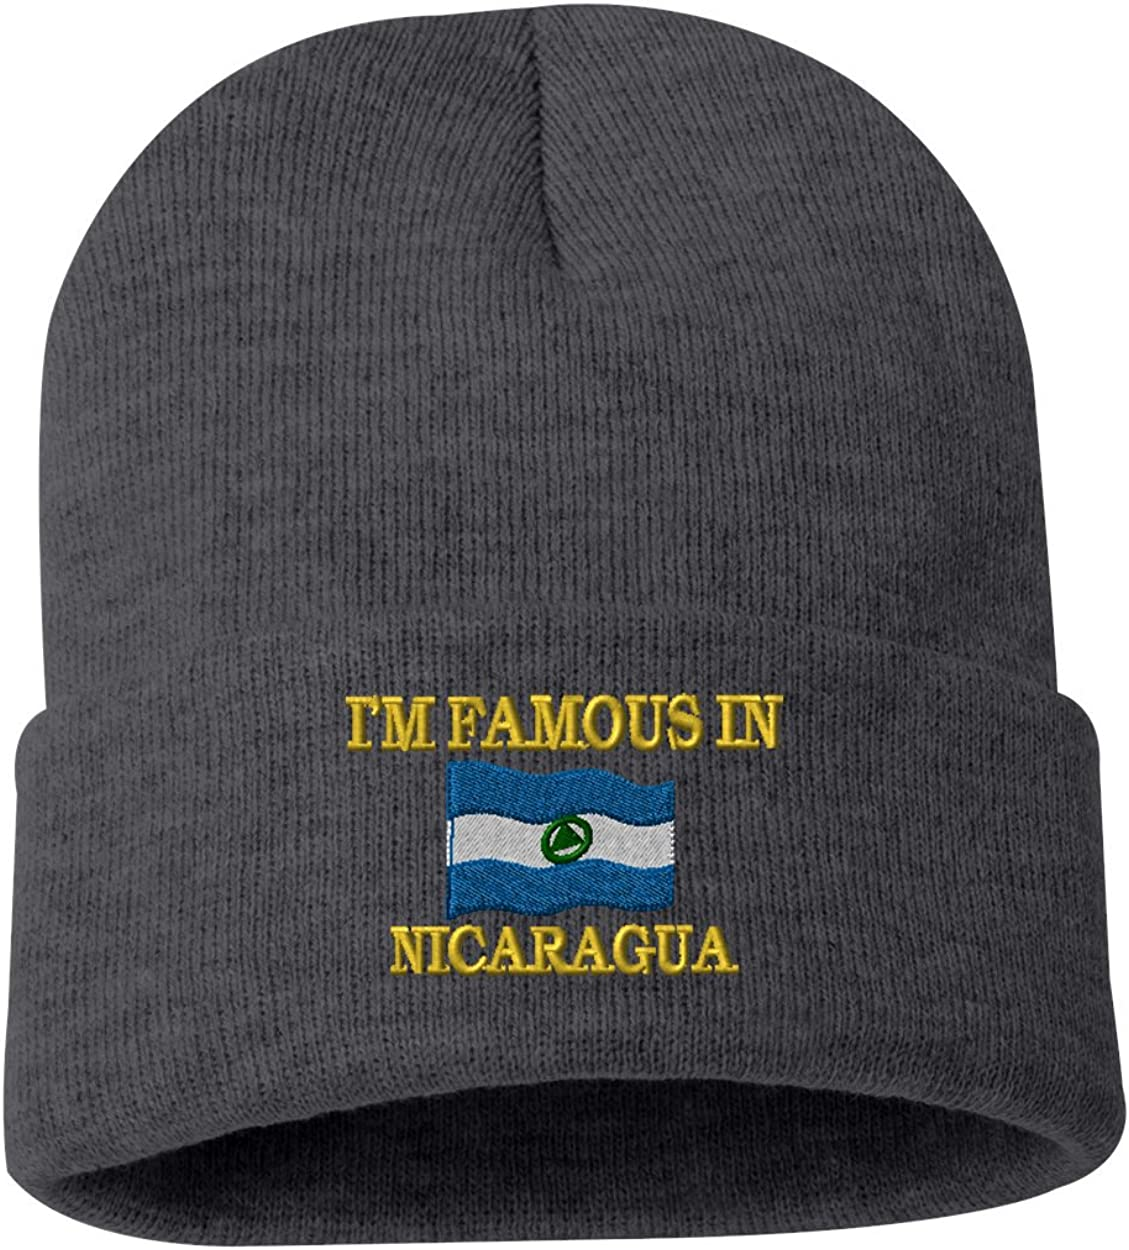 IM FAMOUS IN NICARAGUA Custom Personalized Embroidery Embroidered Beanie